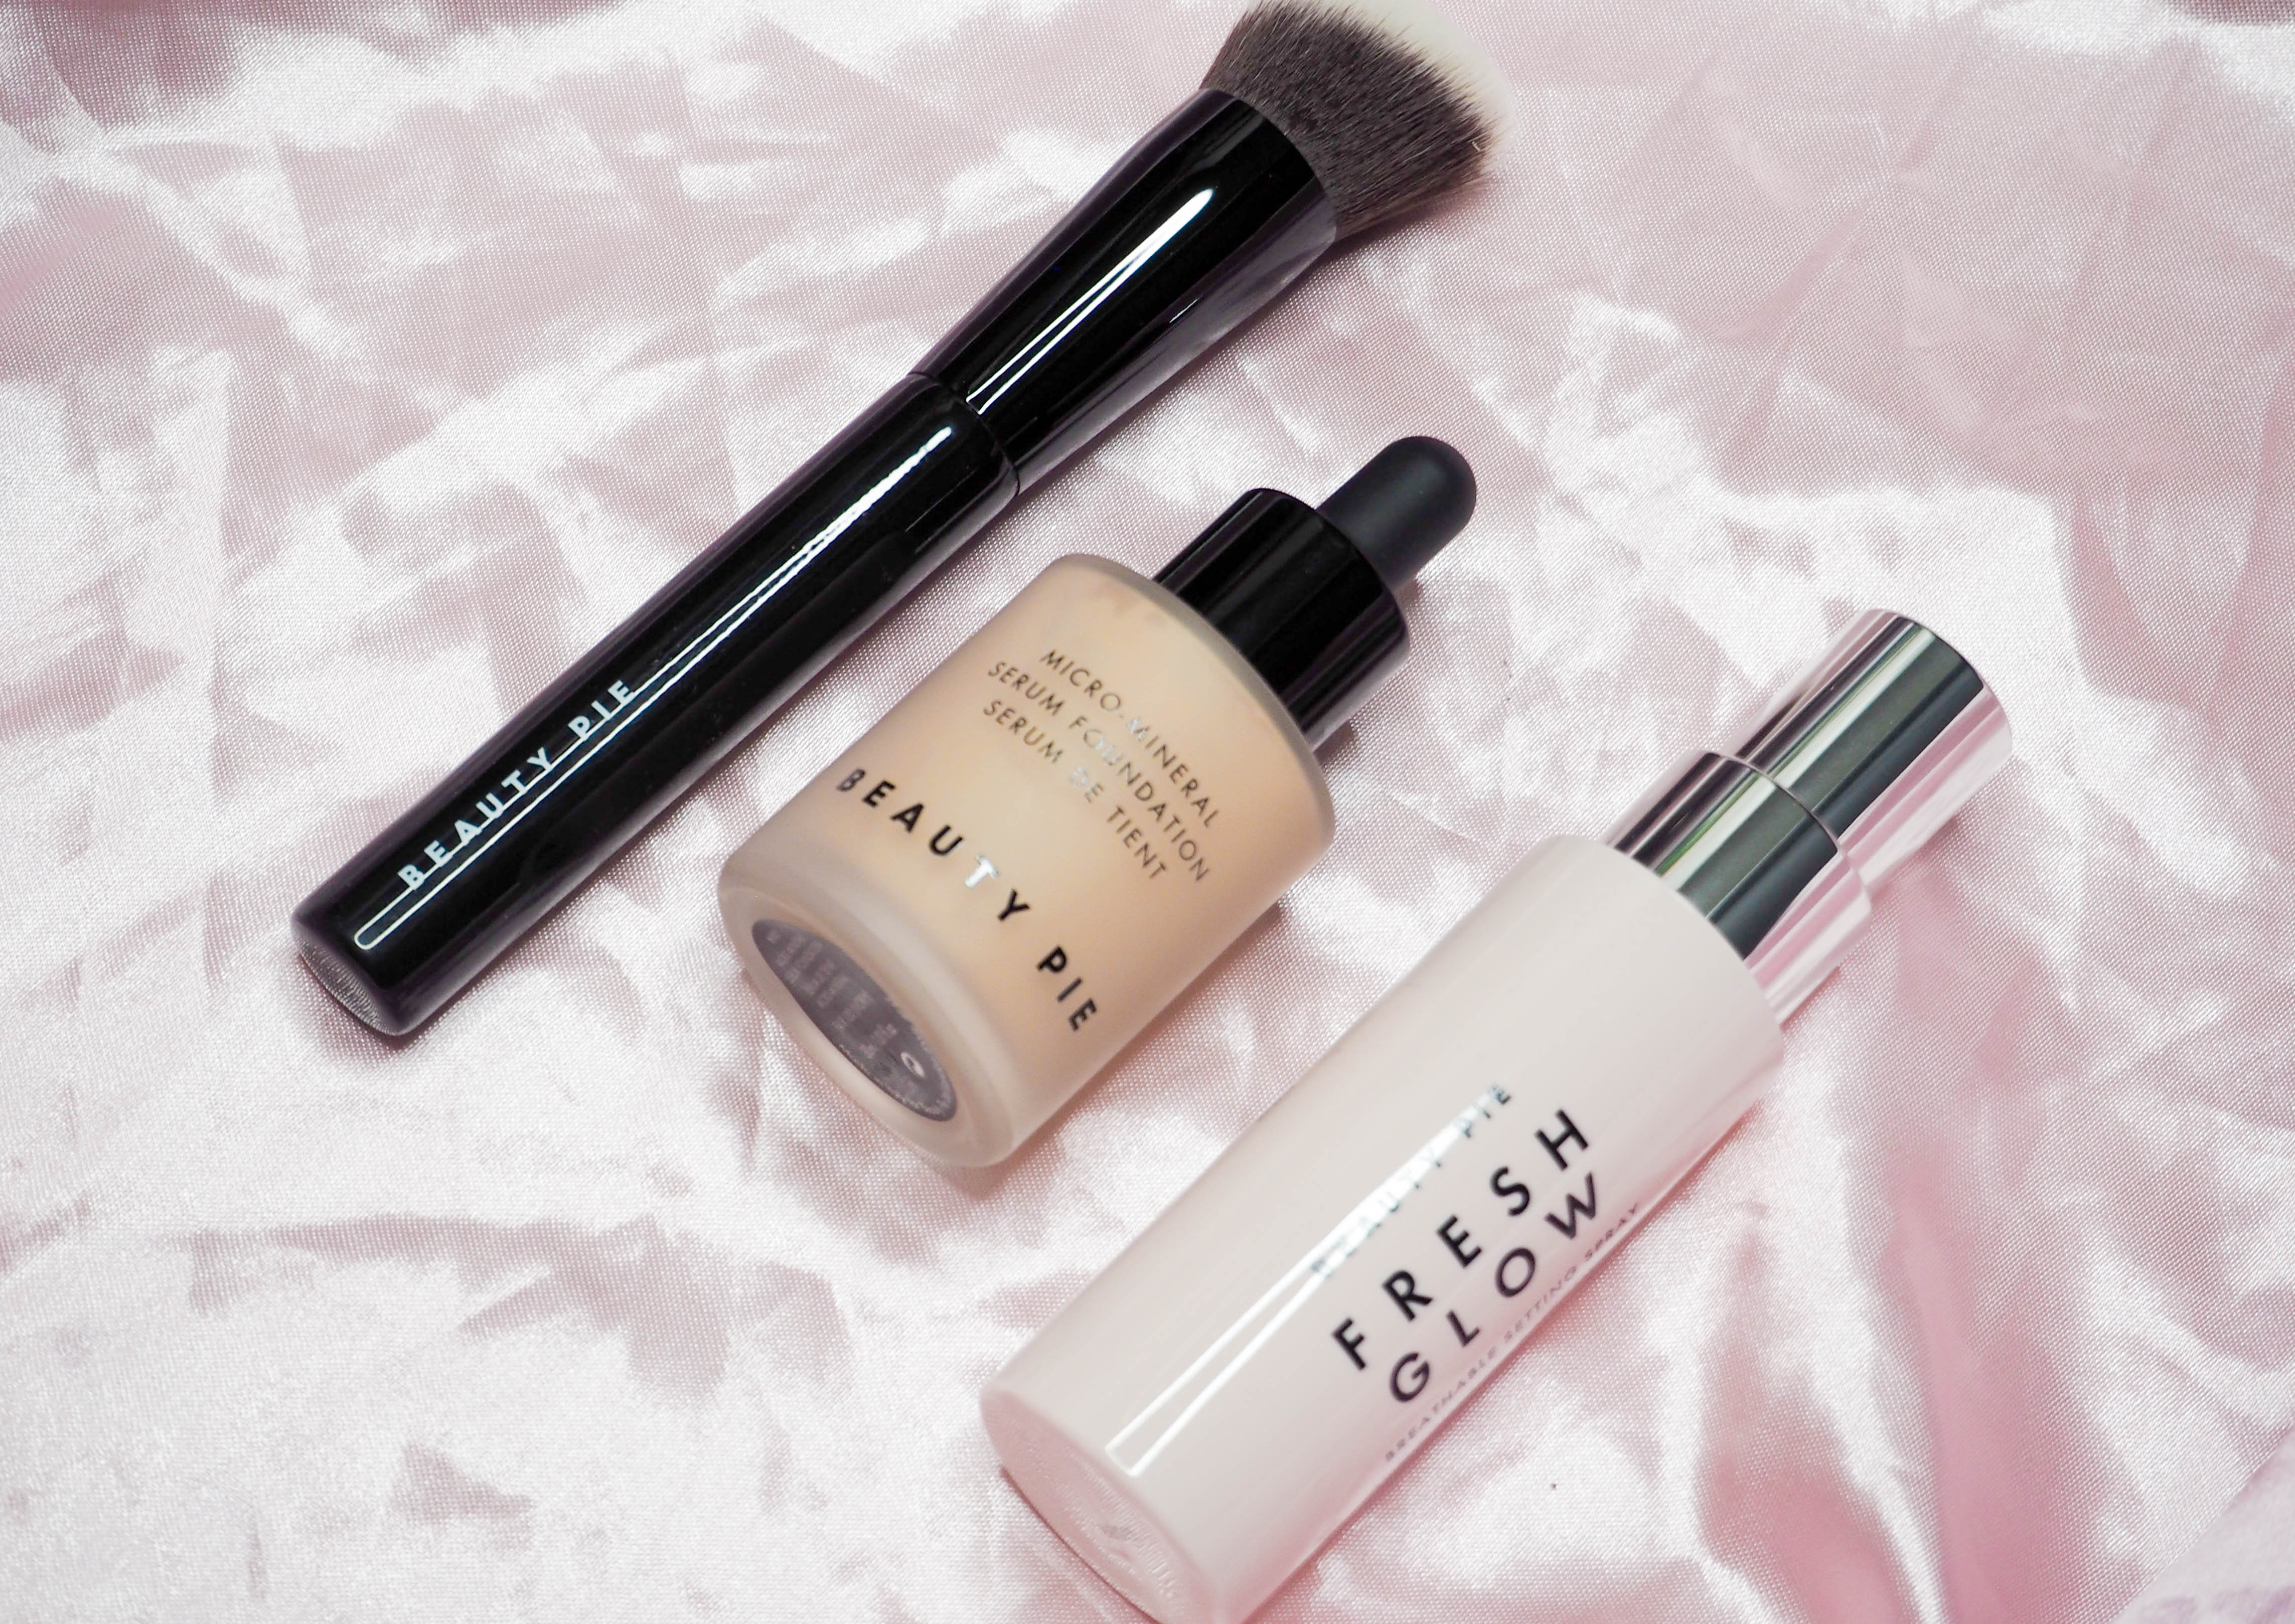 Beauty Pie Fresh Glow Breathable Setting Spray Review